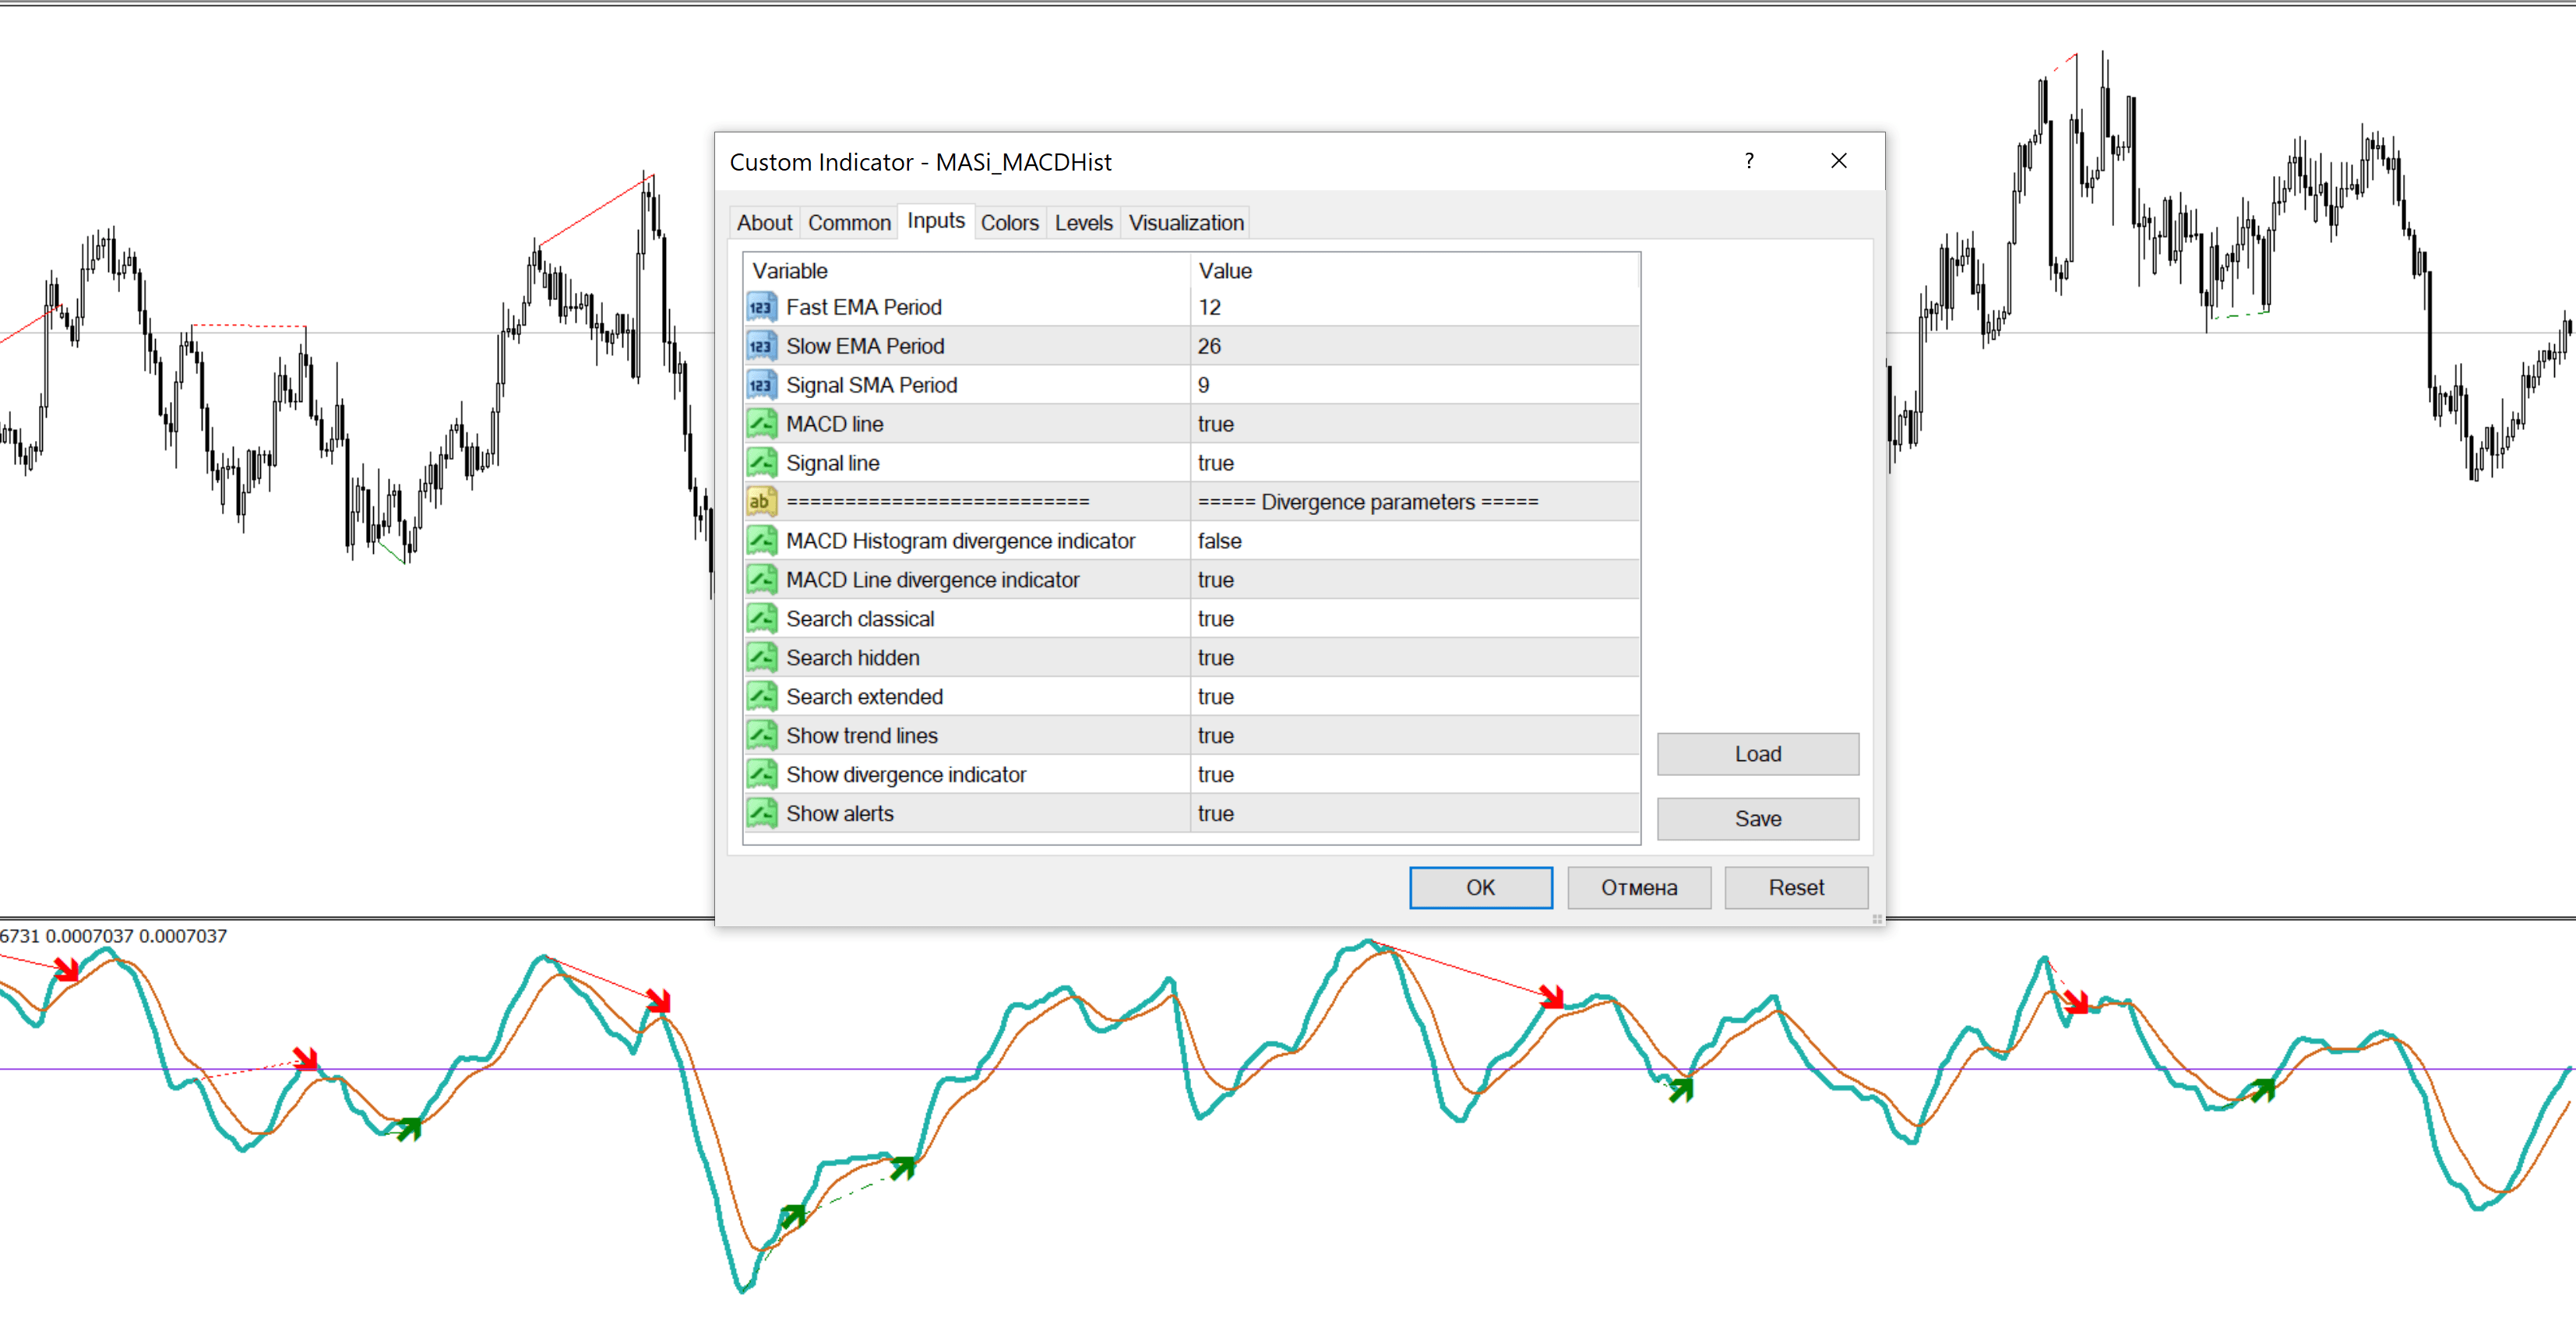 Divergence MACD Histogram Indicator Settings